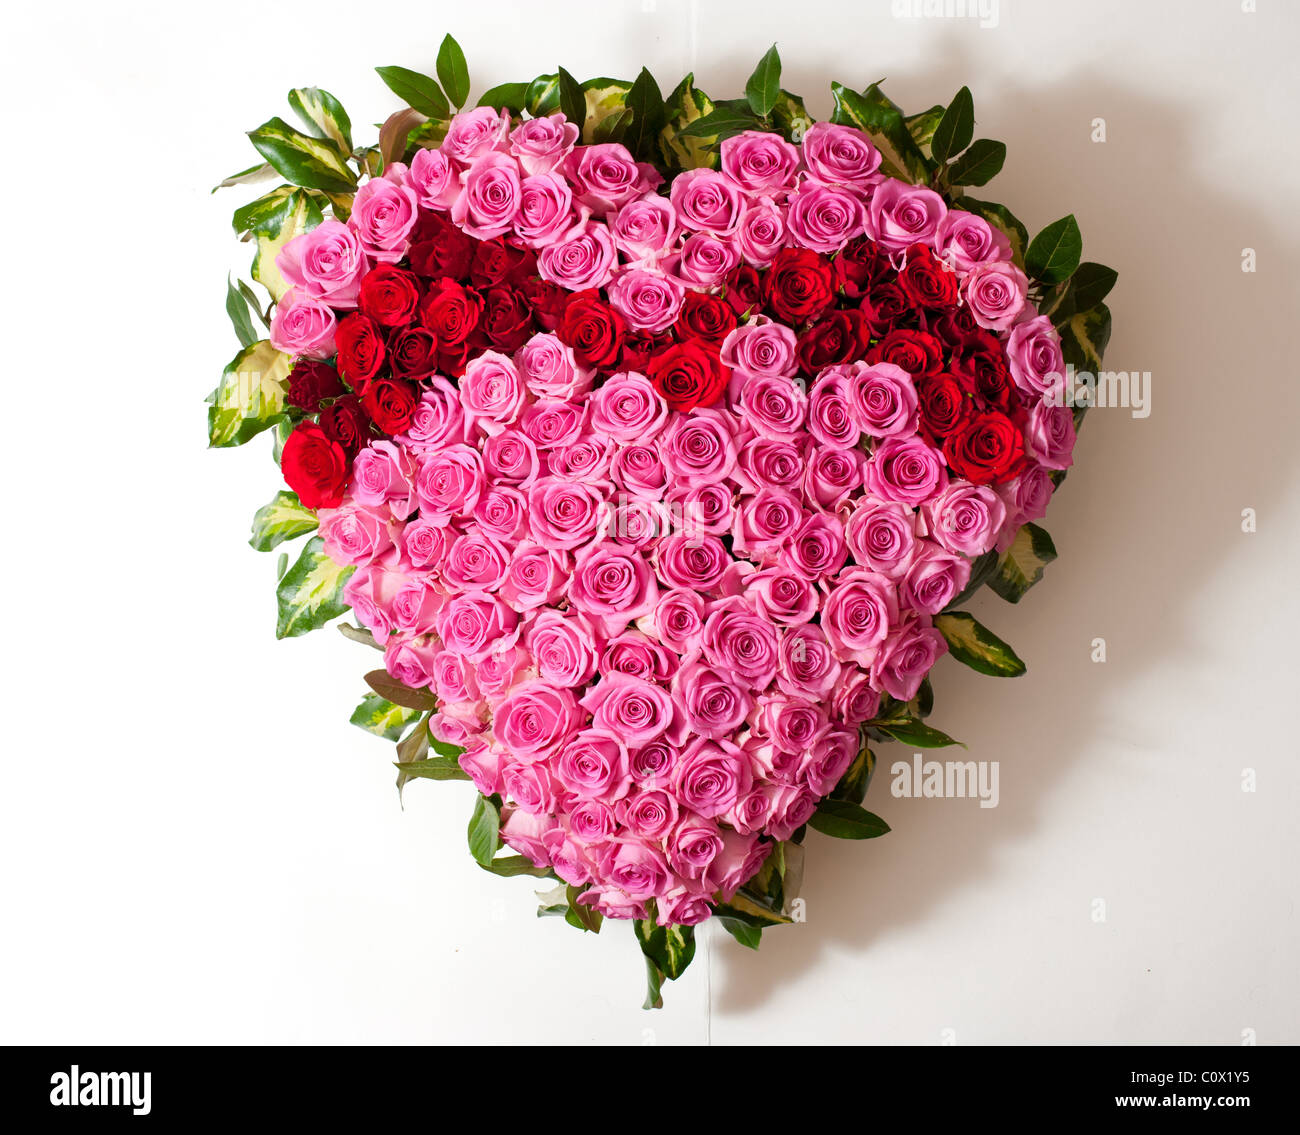 Heart Shaped Funeral Flowers Stock Photo 34993033 Alamy